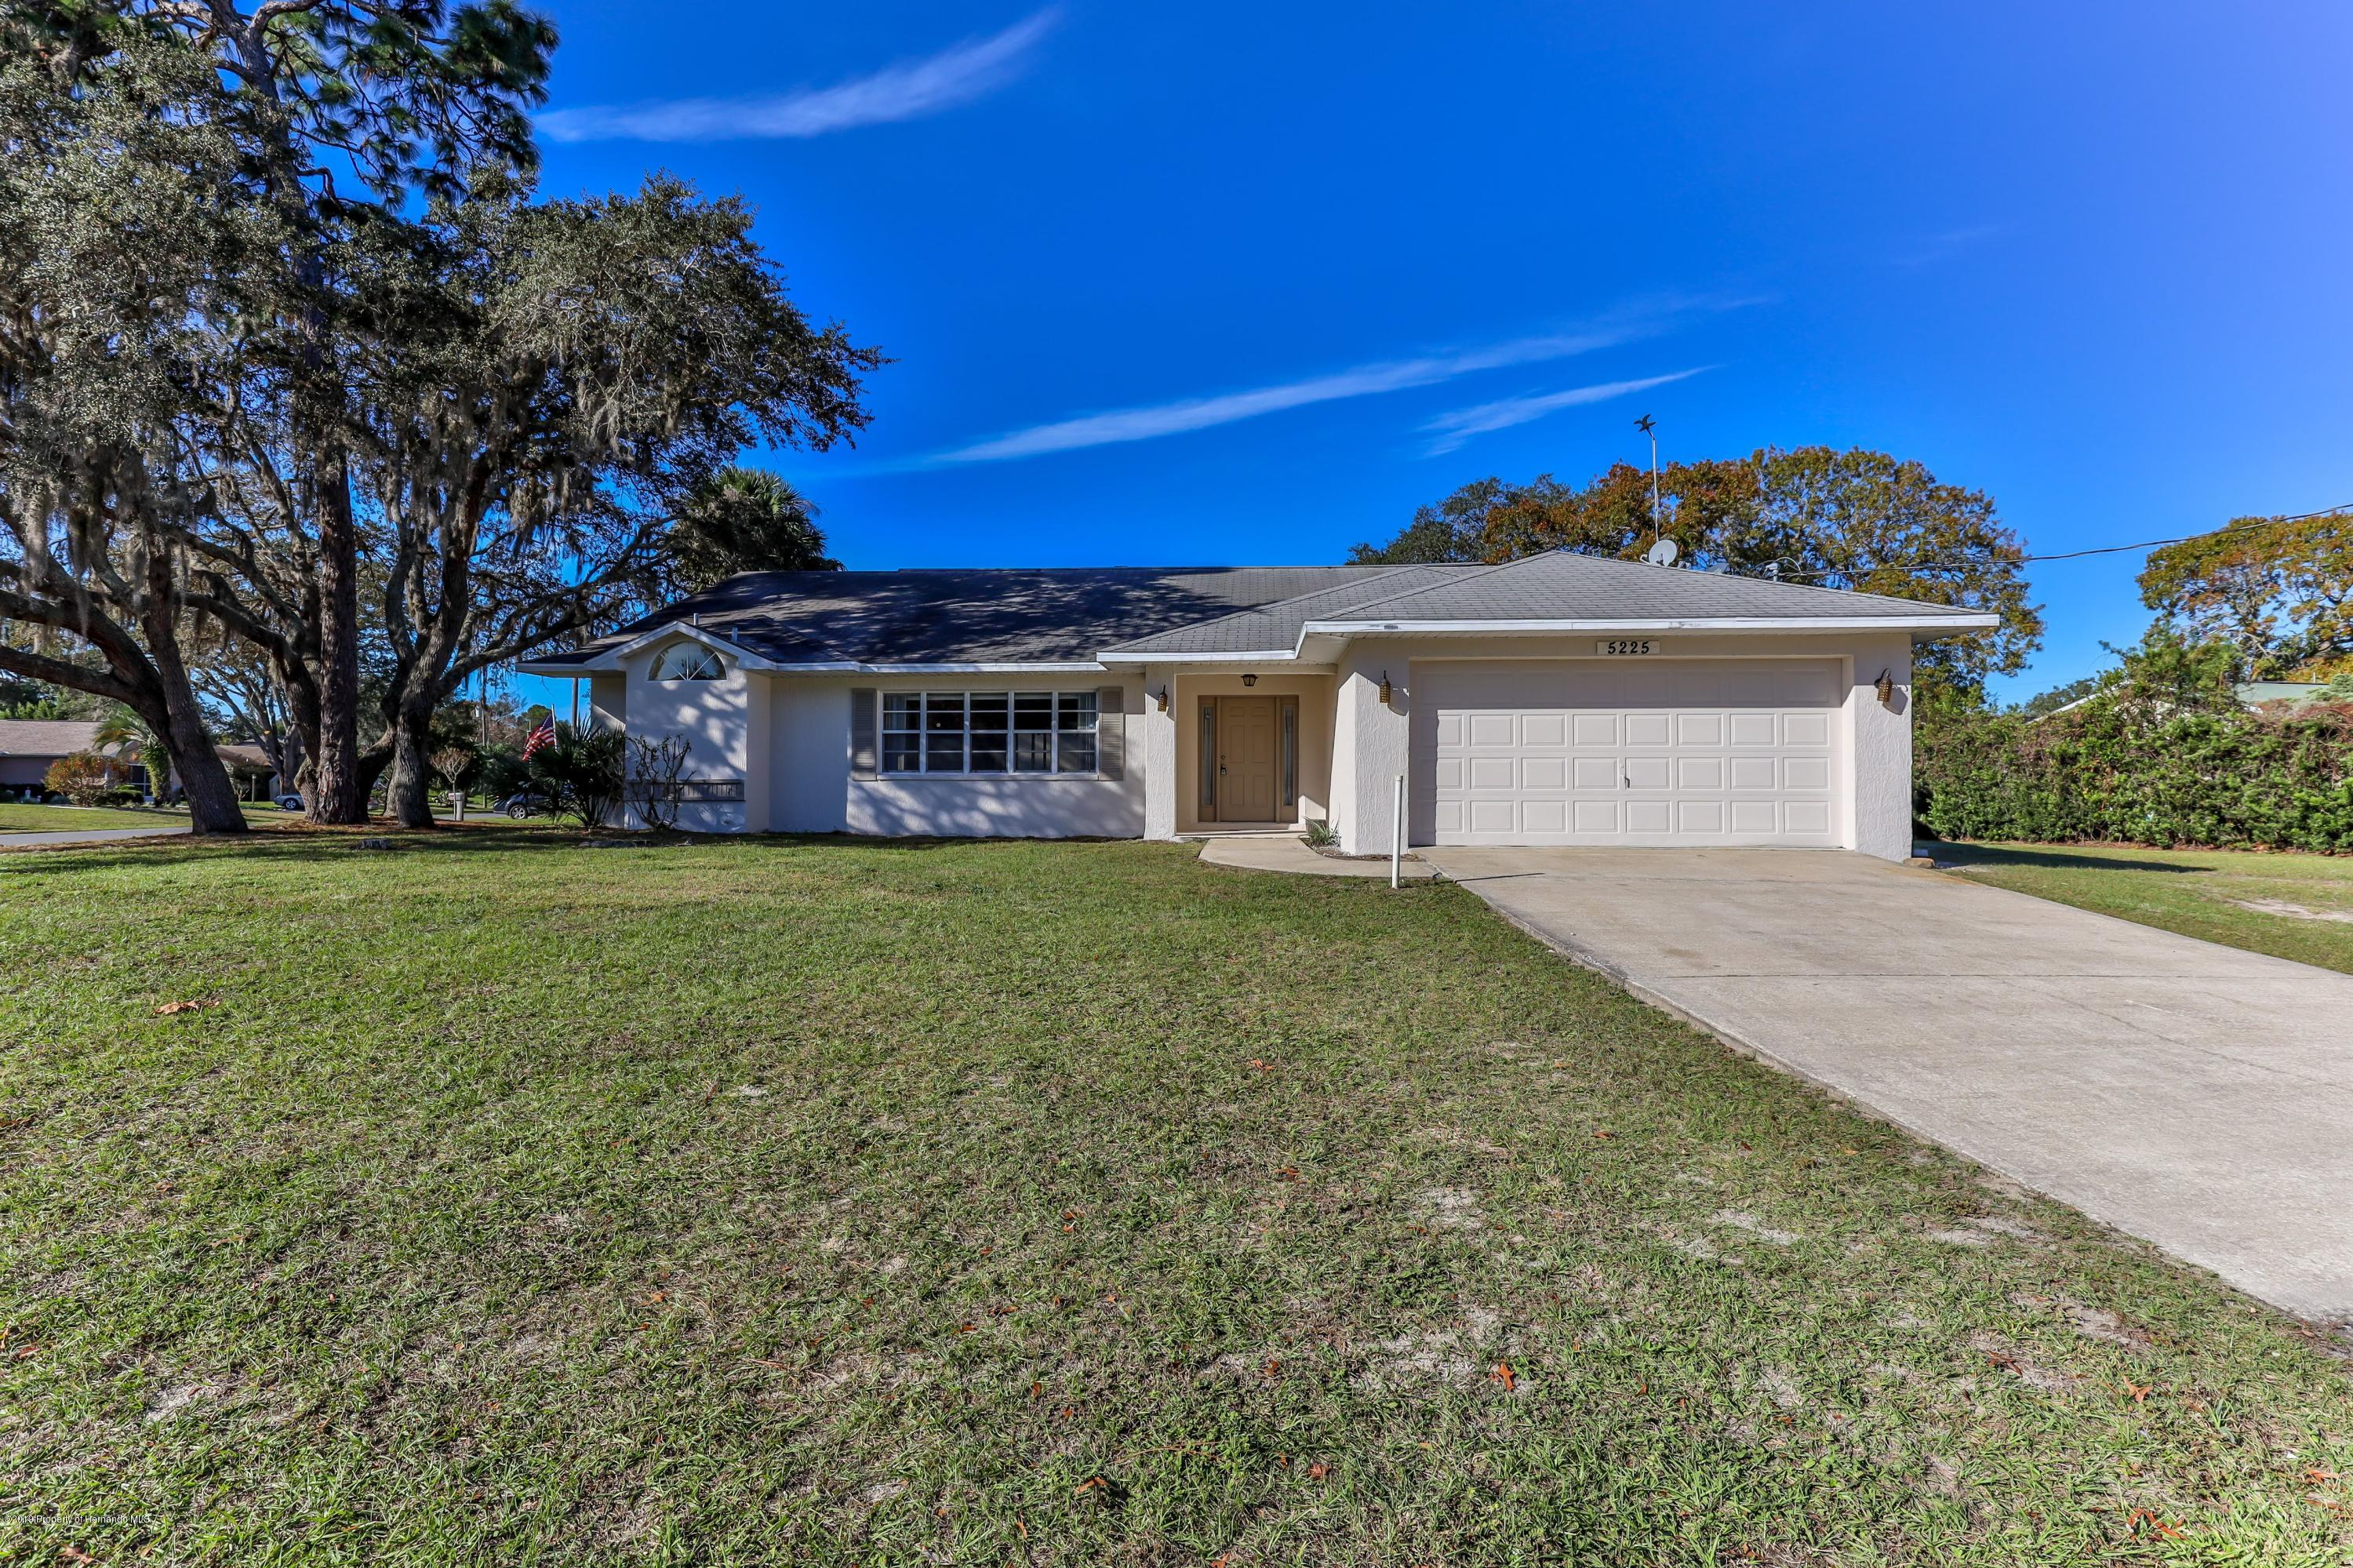 5225 Harbinger Road, Spring Hill, Florida 34608, 3 Bedrooms Bedrooms, ,2 BathroomsBathrooms,Residential,For Sale,Harbinger,2206055